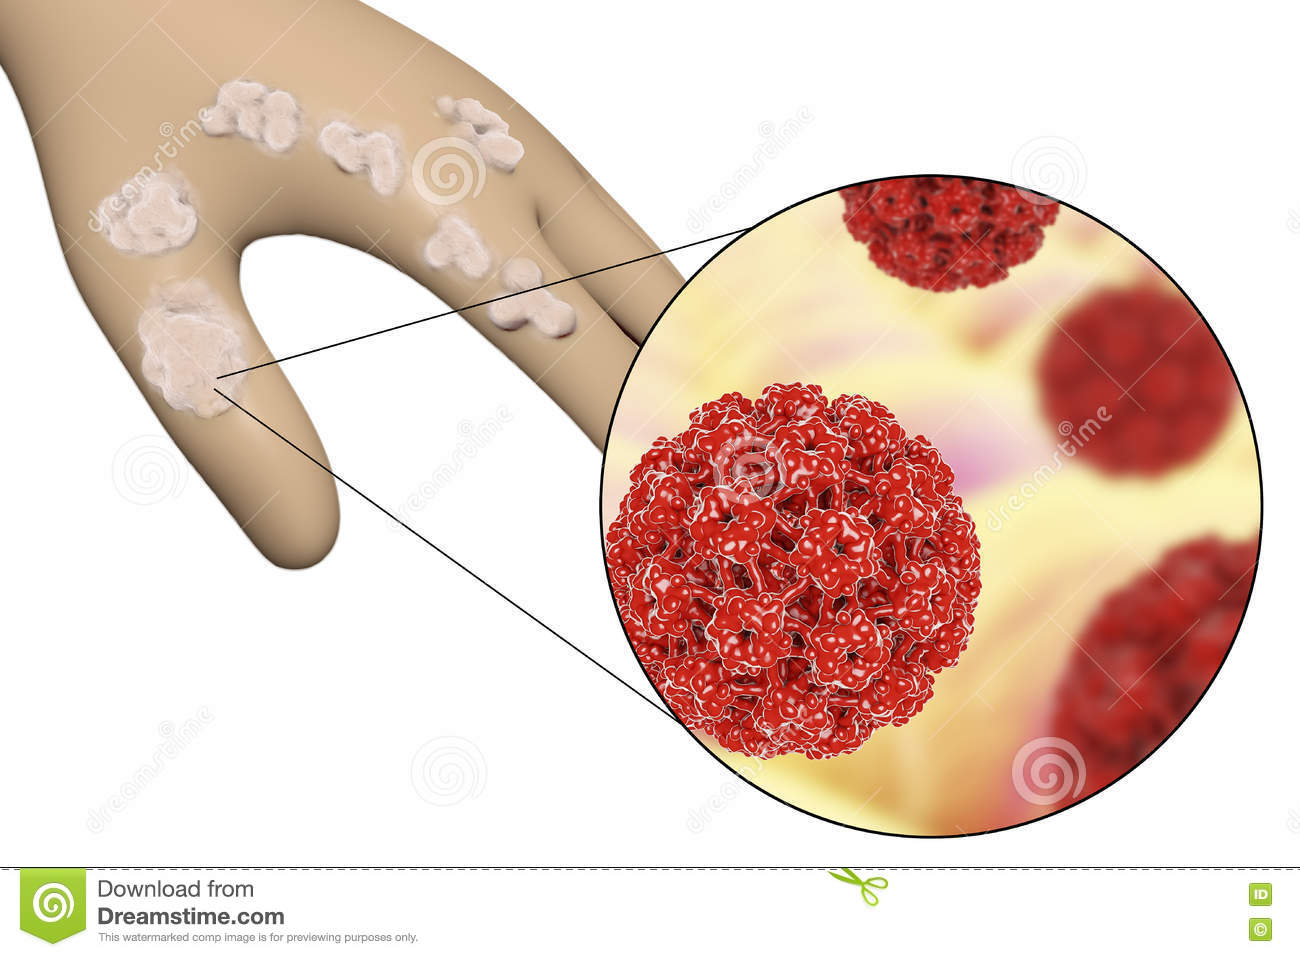 hpv papillomavirus cose hpv warts lips pictures